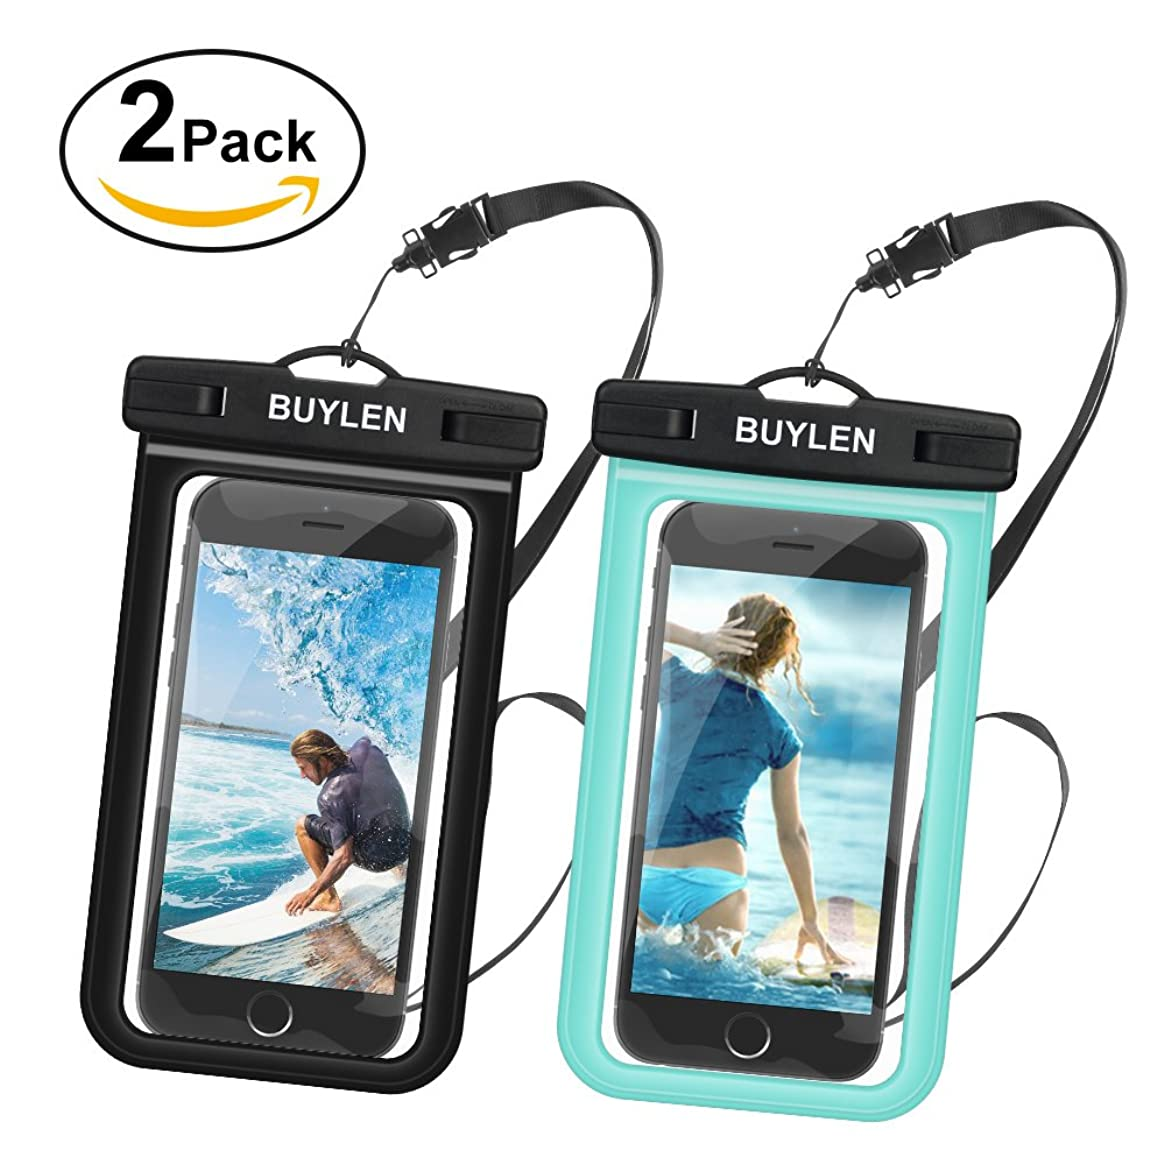 Buylen Universal Waterproof Case with Sensitive PVC Touch Screen and Neck Strap, 100% Waterproof Dry Bag Pouch for Outdoor Activities, Fits Devices up to 6.0